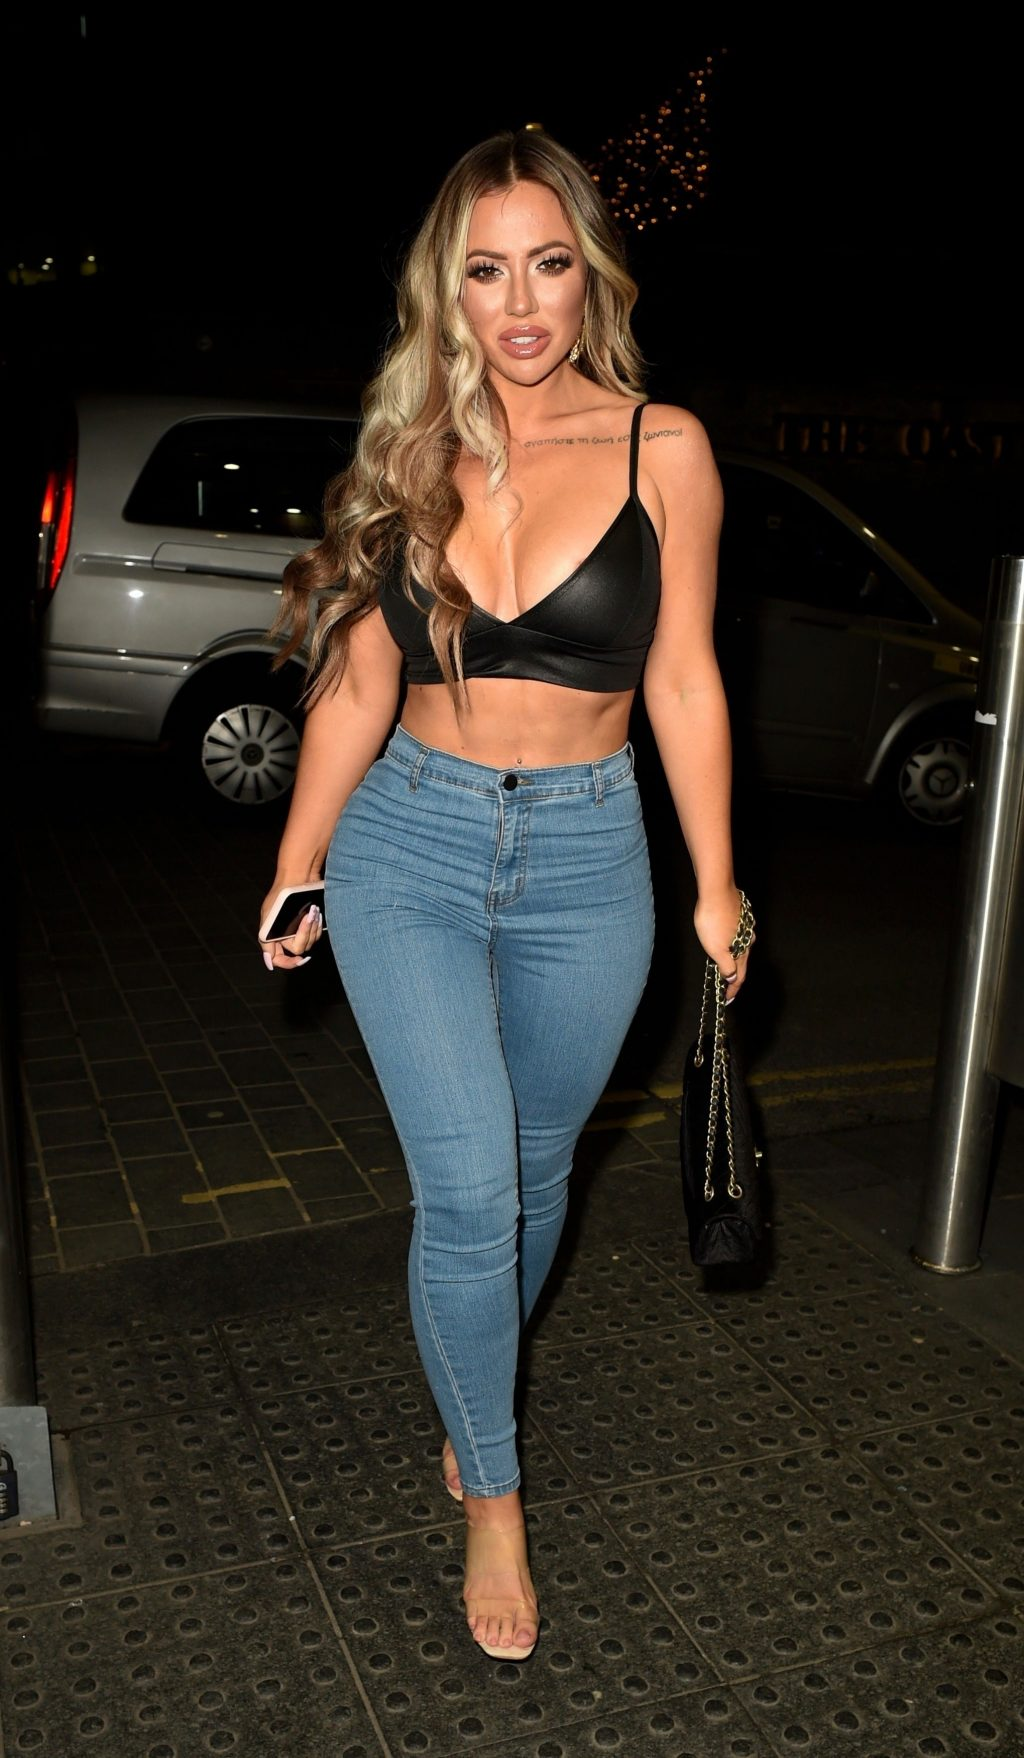 Holly Hagan Shows Off Her Sexy Figure on a Girls Night Out (49 Photos)